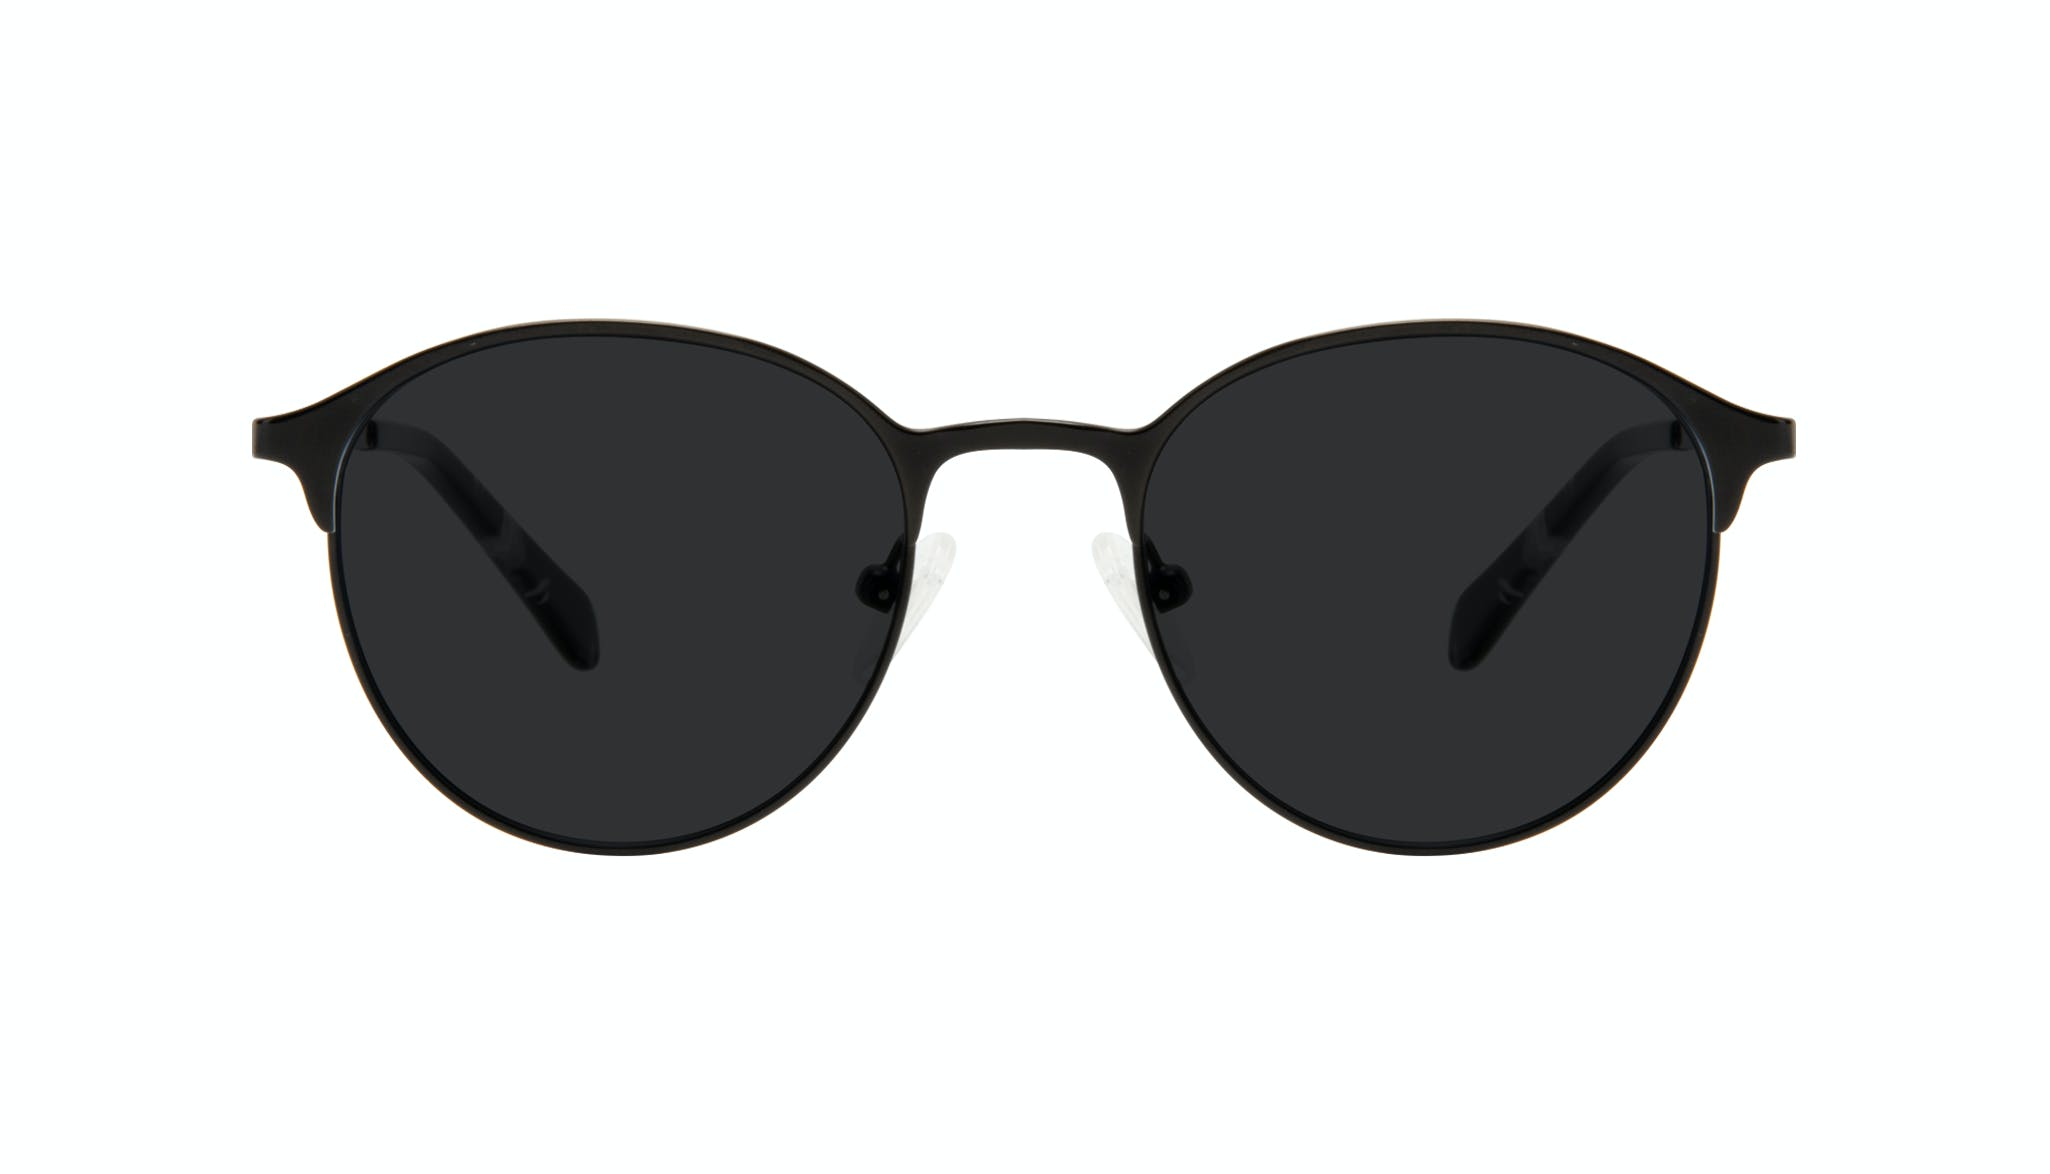 Affordable Fashion Glasses Round Sunglasses Women Bay II Black Matte Front